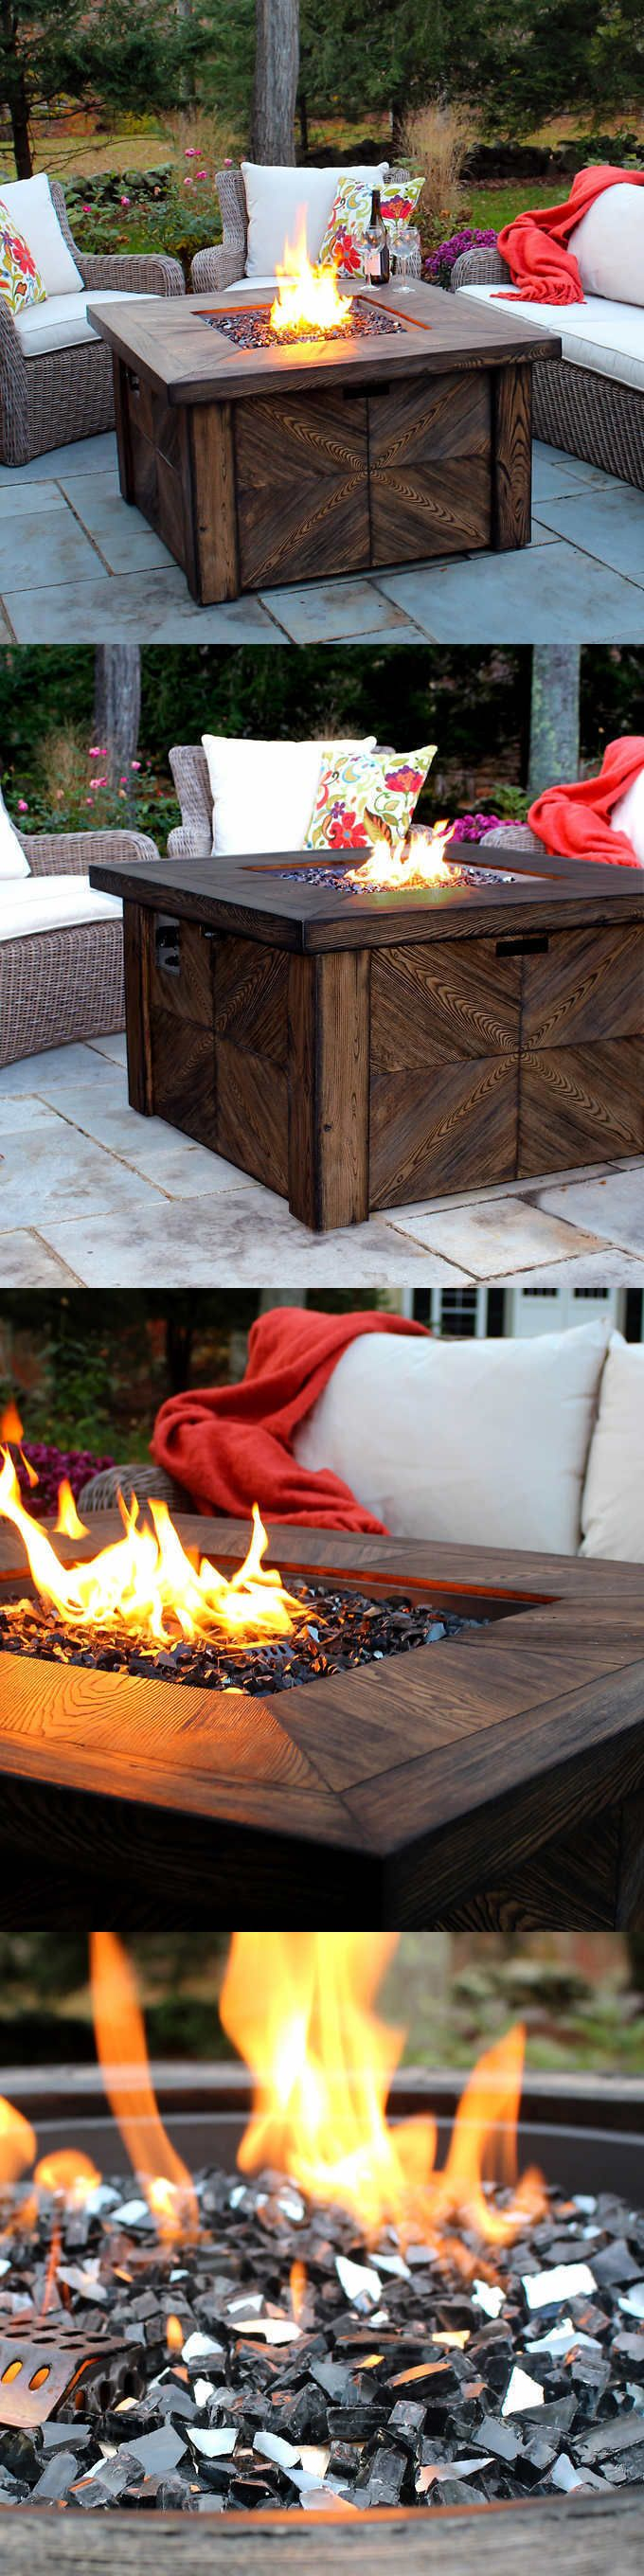 Fire Pits and Chimineas 85916: Fire Pit Table Propane Outdoor Backyard Patio Gas Heater Fireplace Deck Lp Cover -> BUY IT NOW ONLY: $559.99 on eBay!